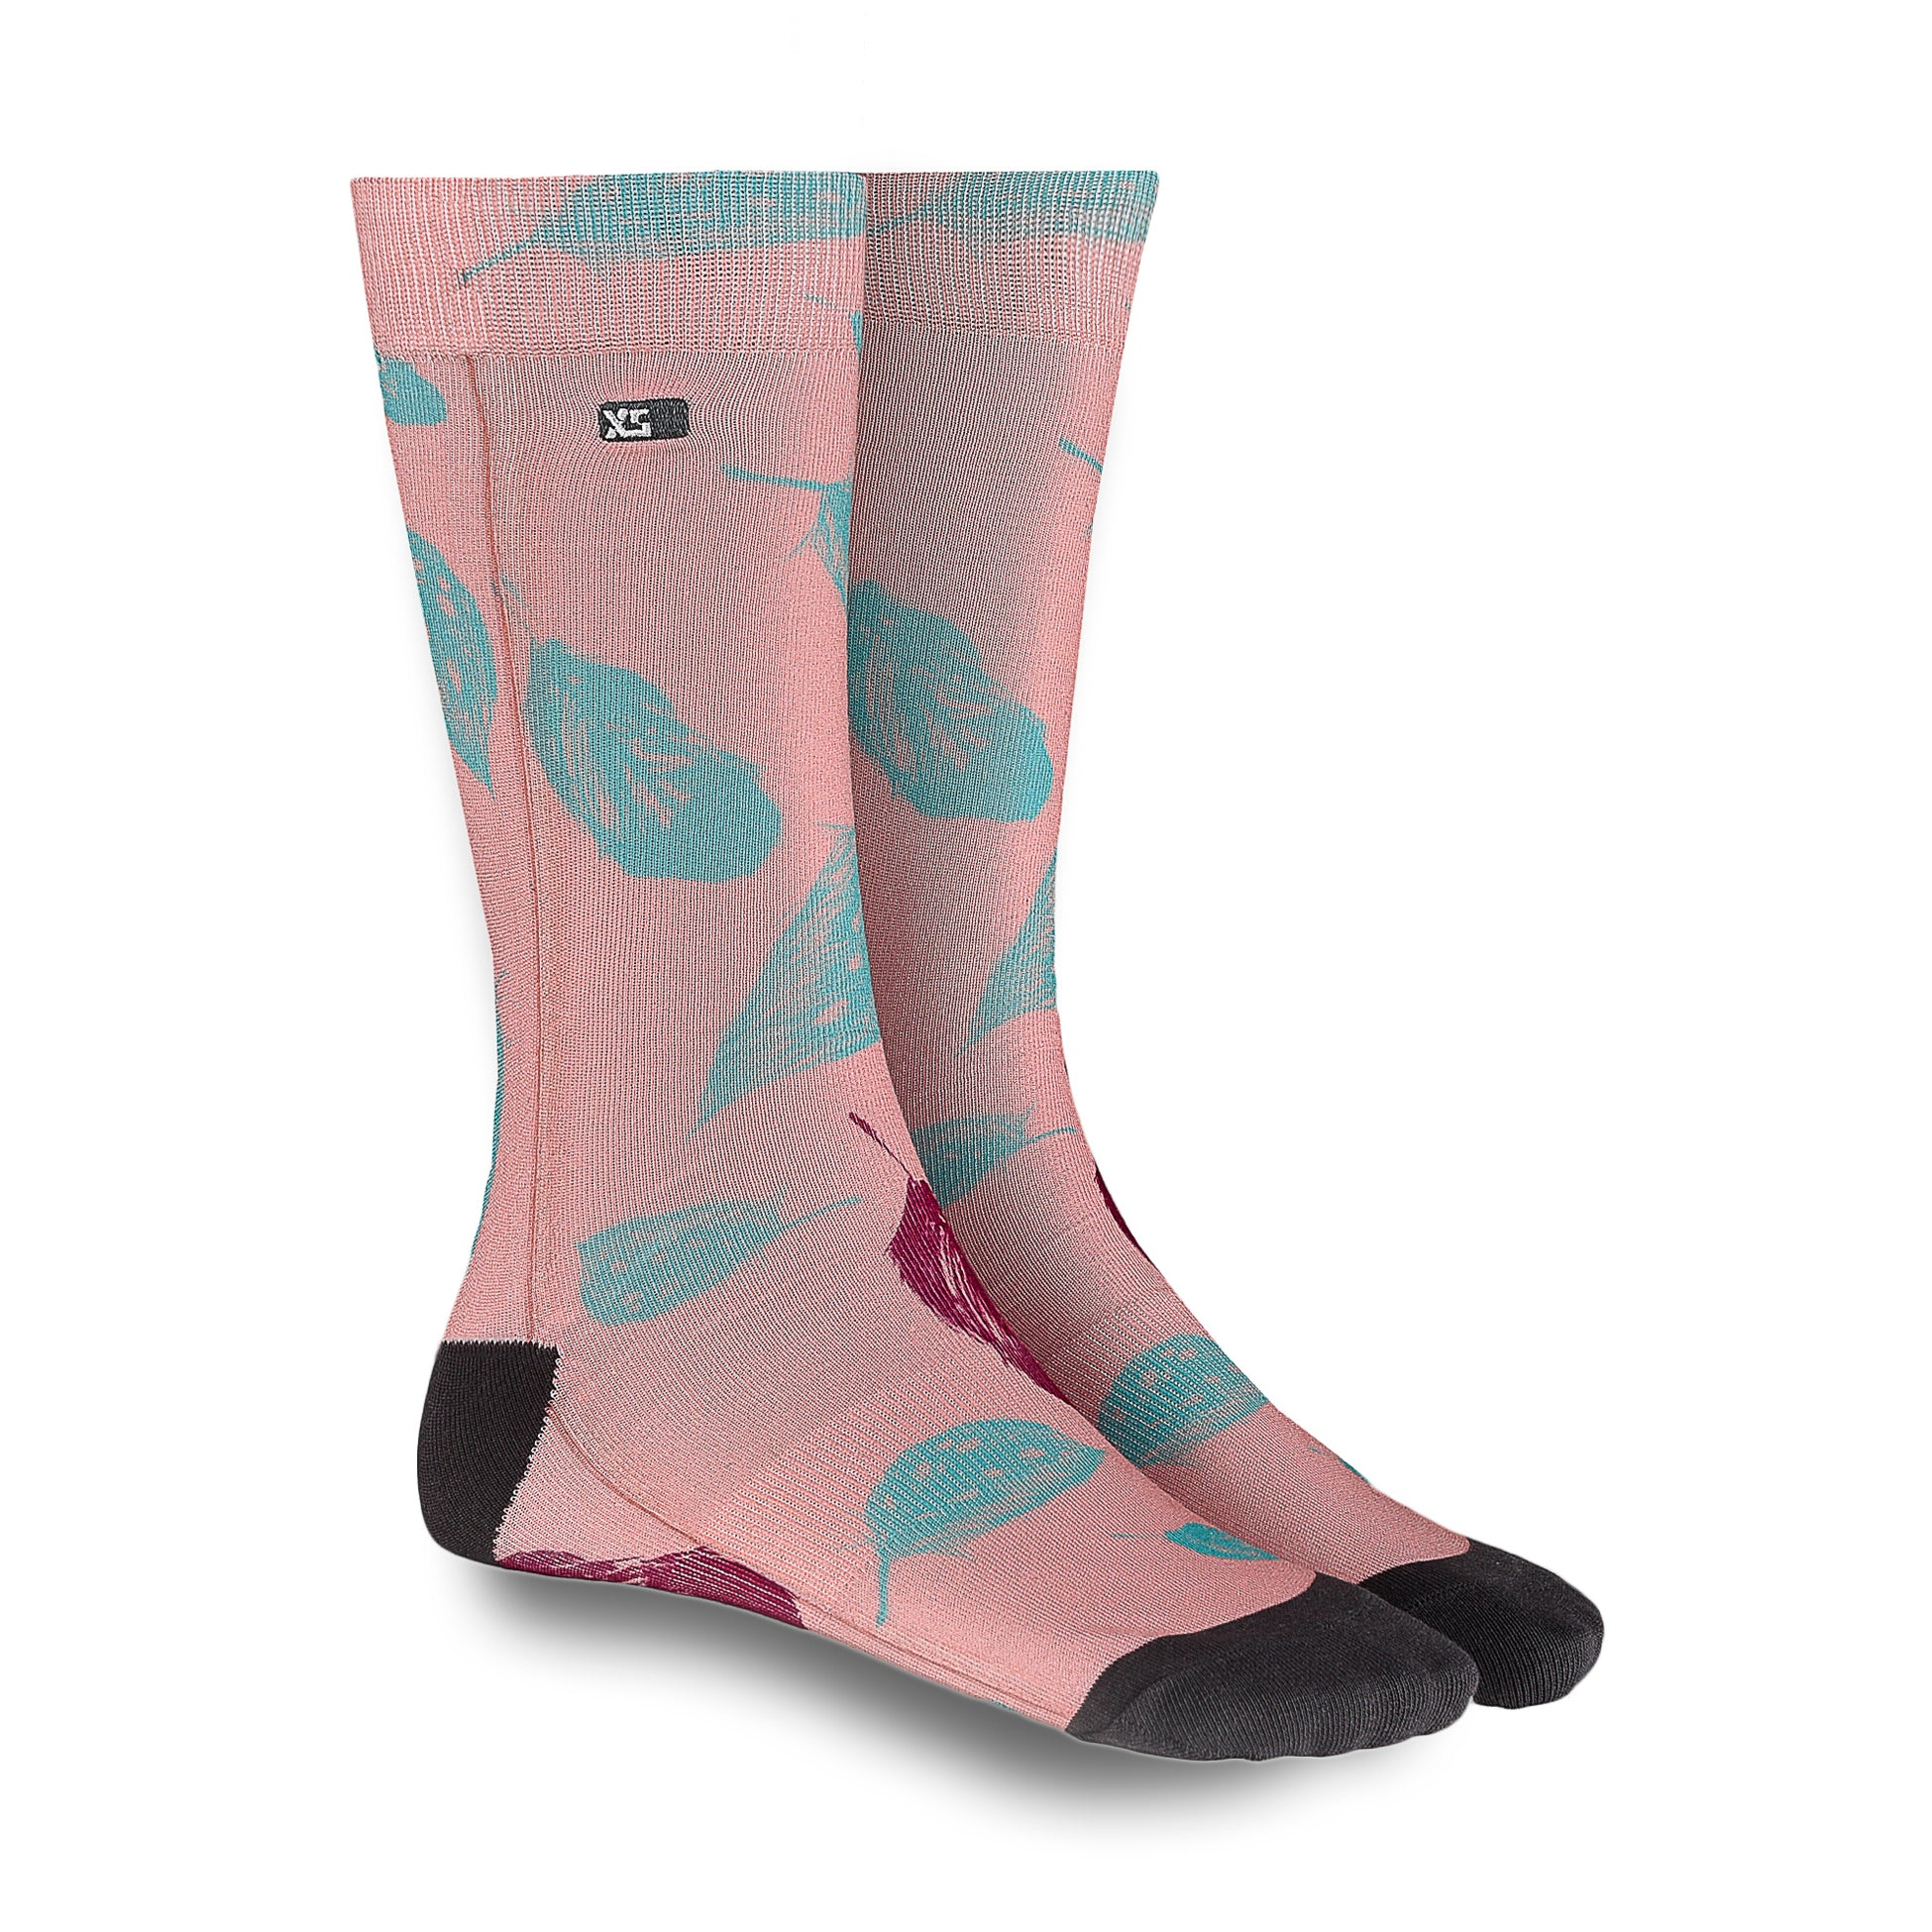 XS UNIFIED: Coral/Mint Feather Socks